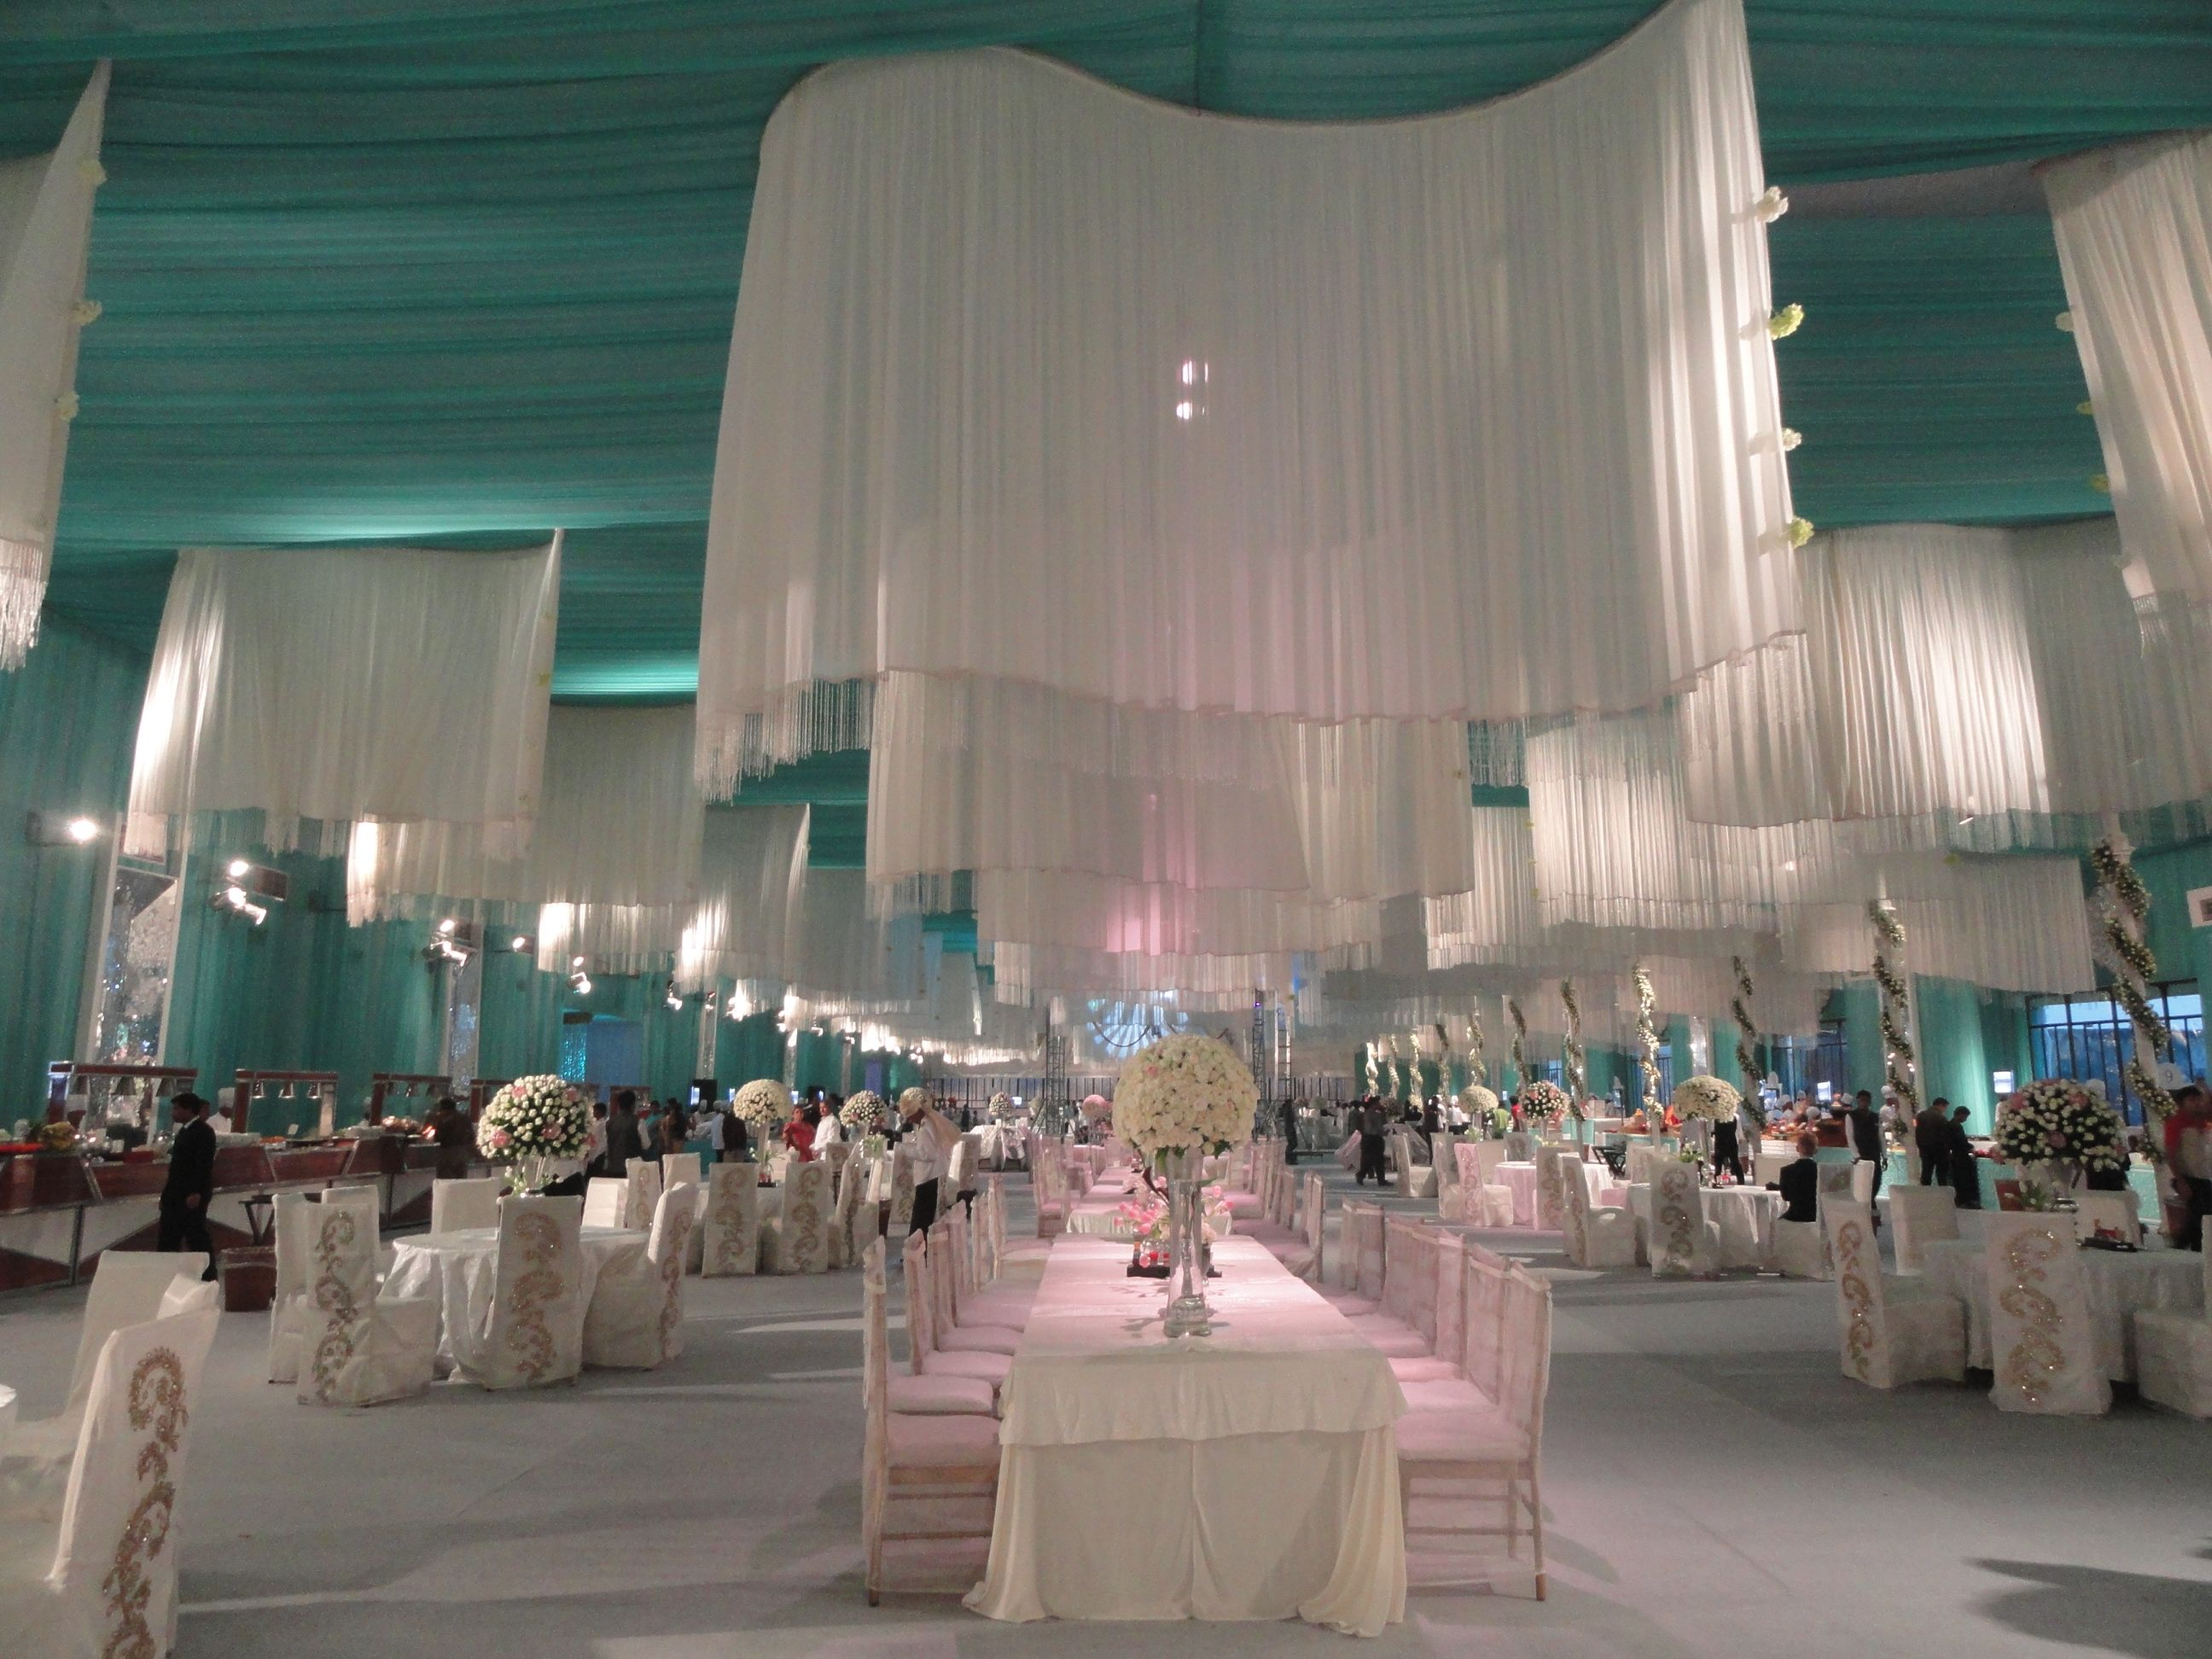 Hindu wedding decoration ideas  Custom designed wave patterns to enhance the overall grandeur with a